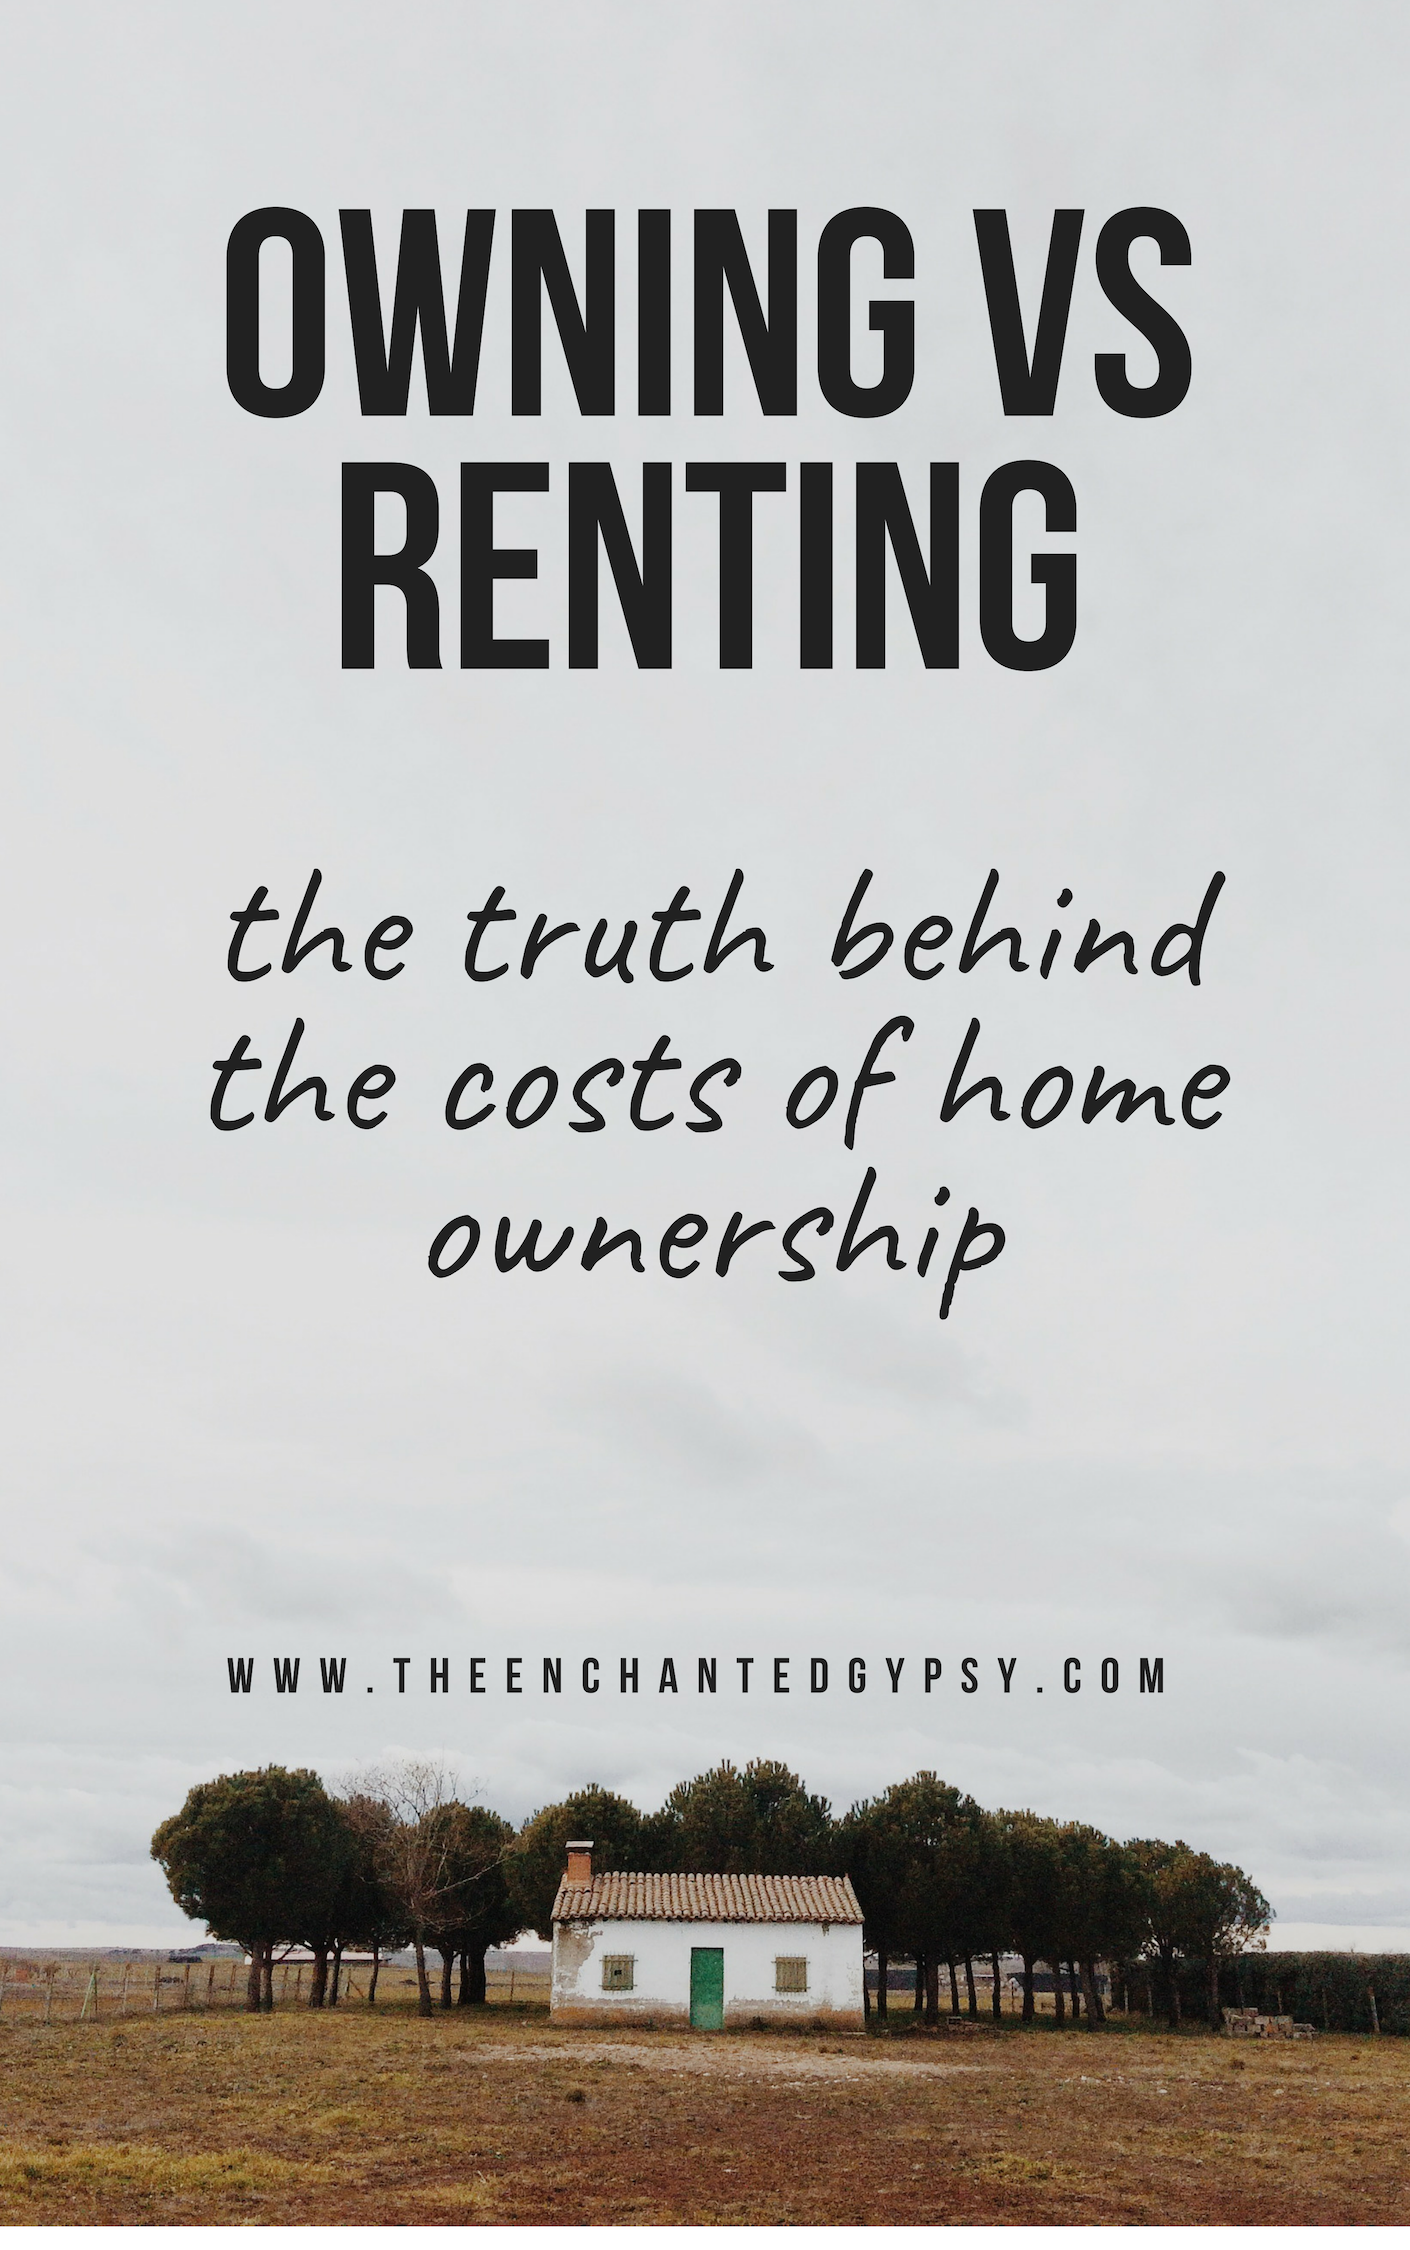 buying a home vs renting costs of home ownership | Personal